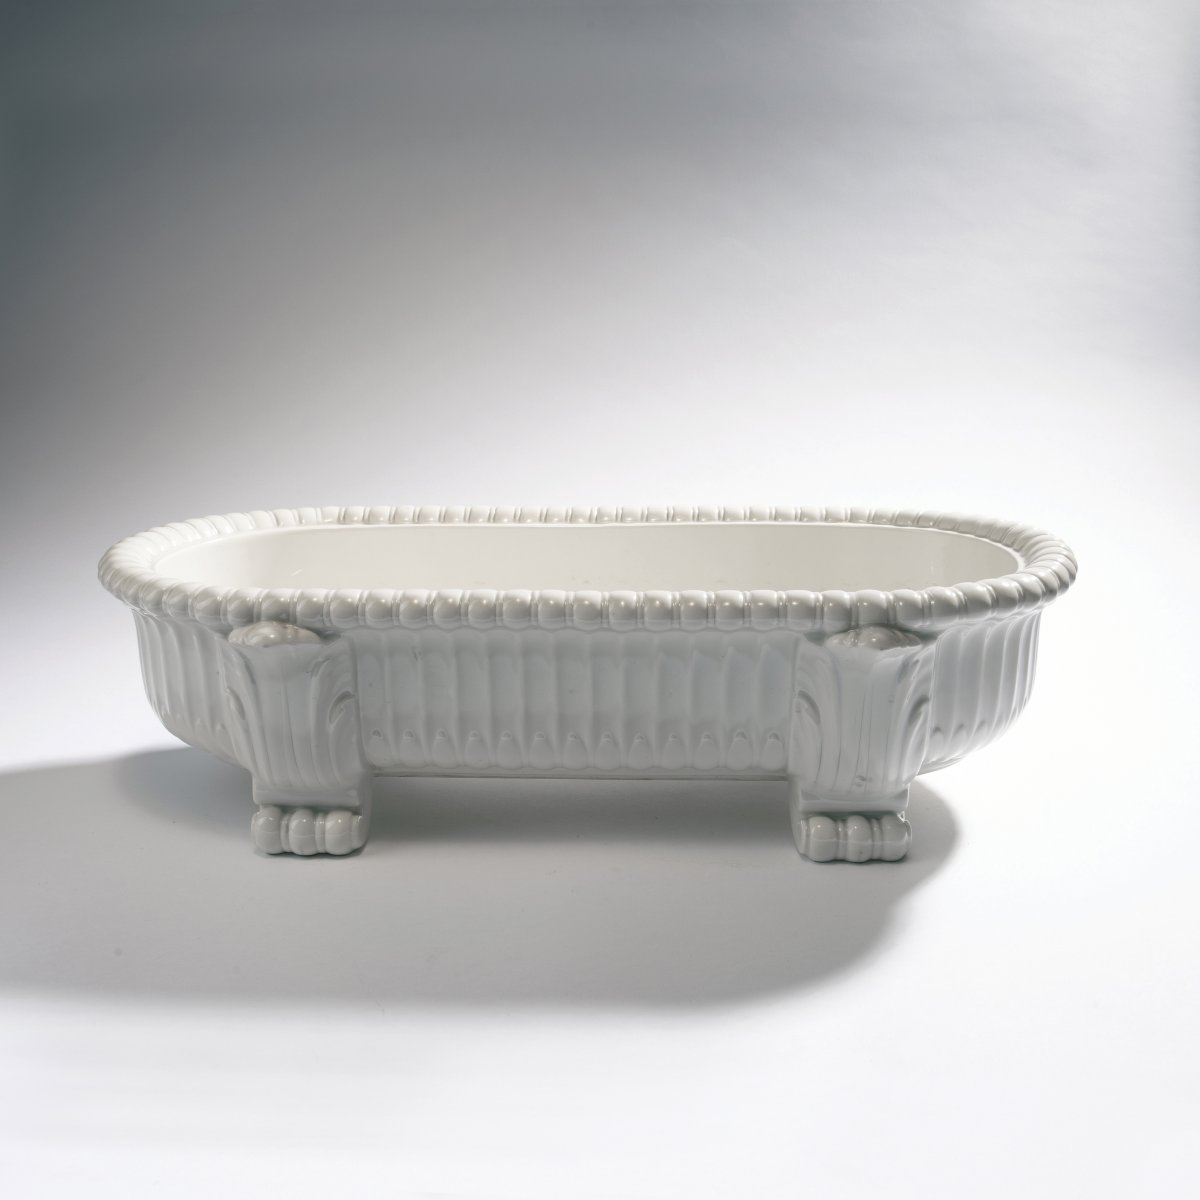 Lot 35 - Adolph Amberg, Jardiniere, 1908Jardiniere, 1908H. 14 cm, 51.5 x 26.5 cm. Made by StPM Berlin, in